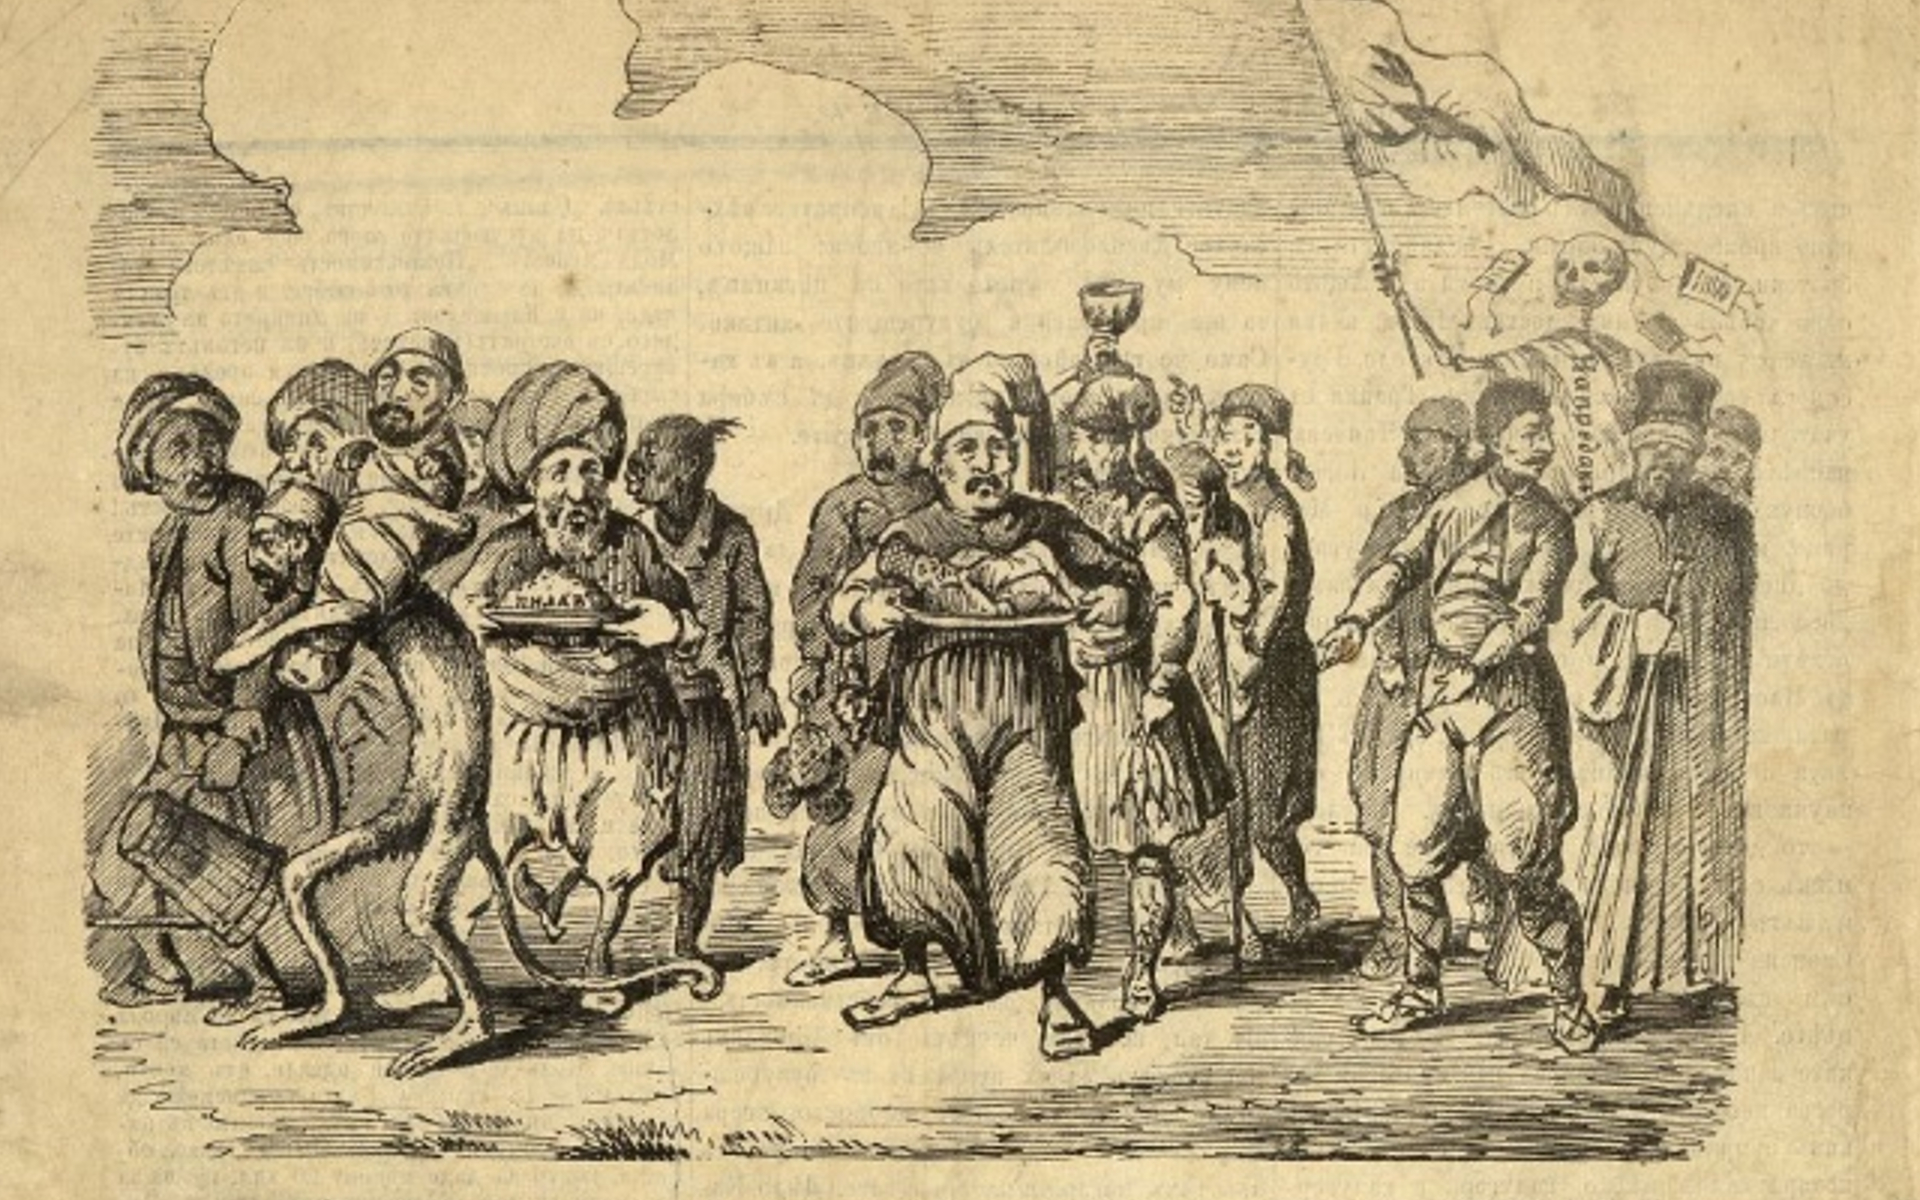 Adventures with Emotions in Bulgarian Literature from the 18th and 19th Century